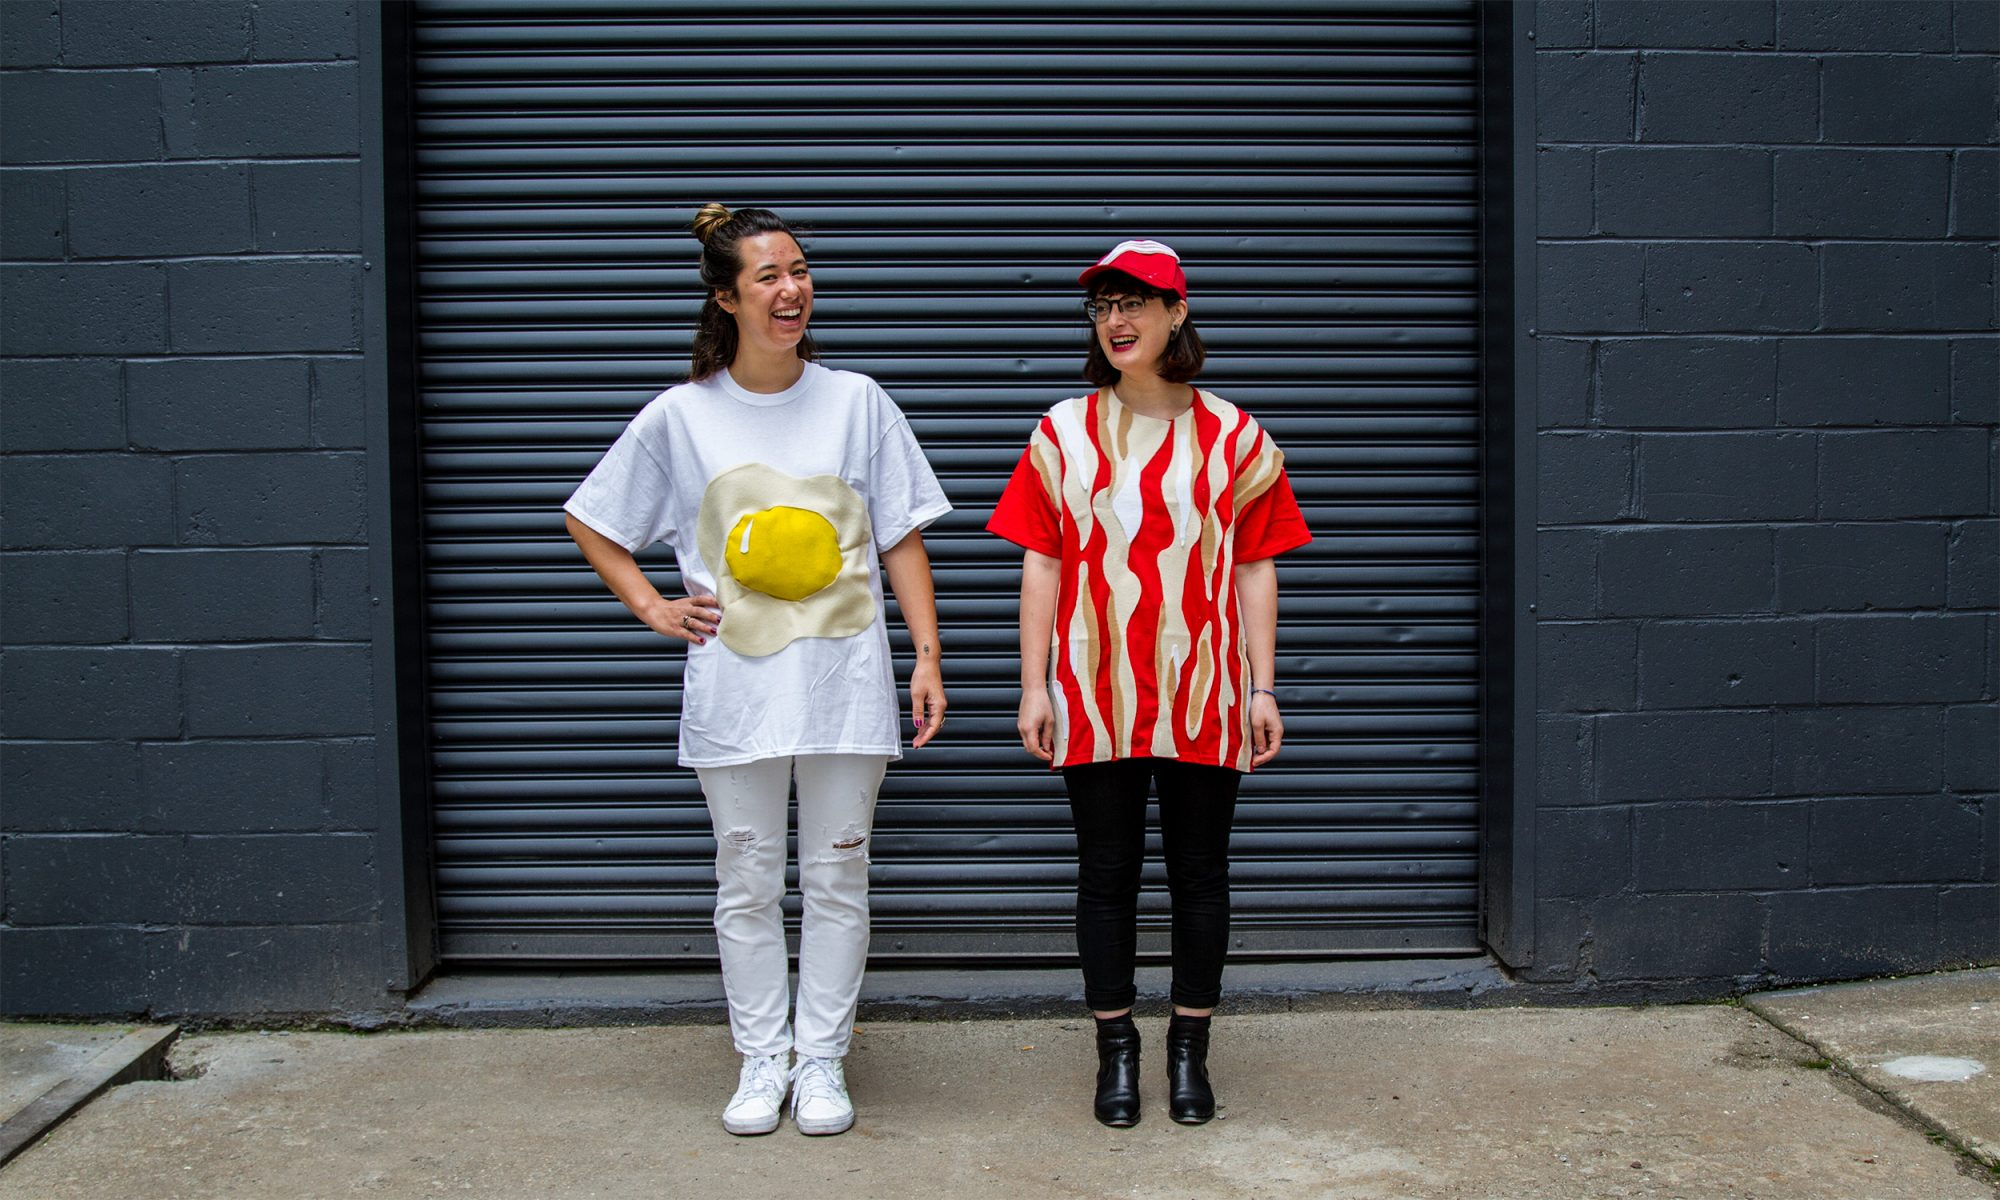 The Best DIY Breakfast Halloween Costume Is Bacon and Eggs